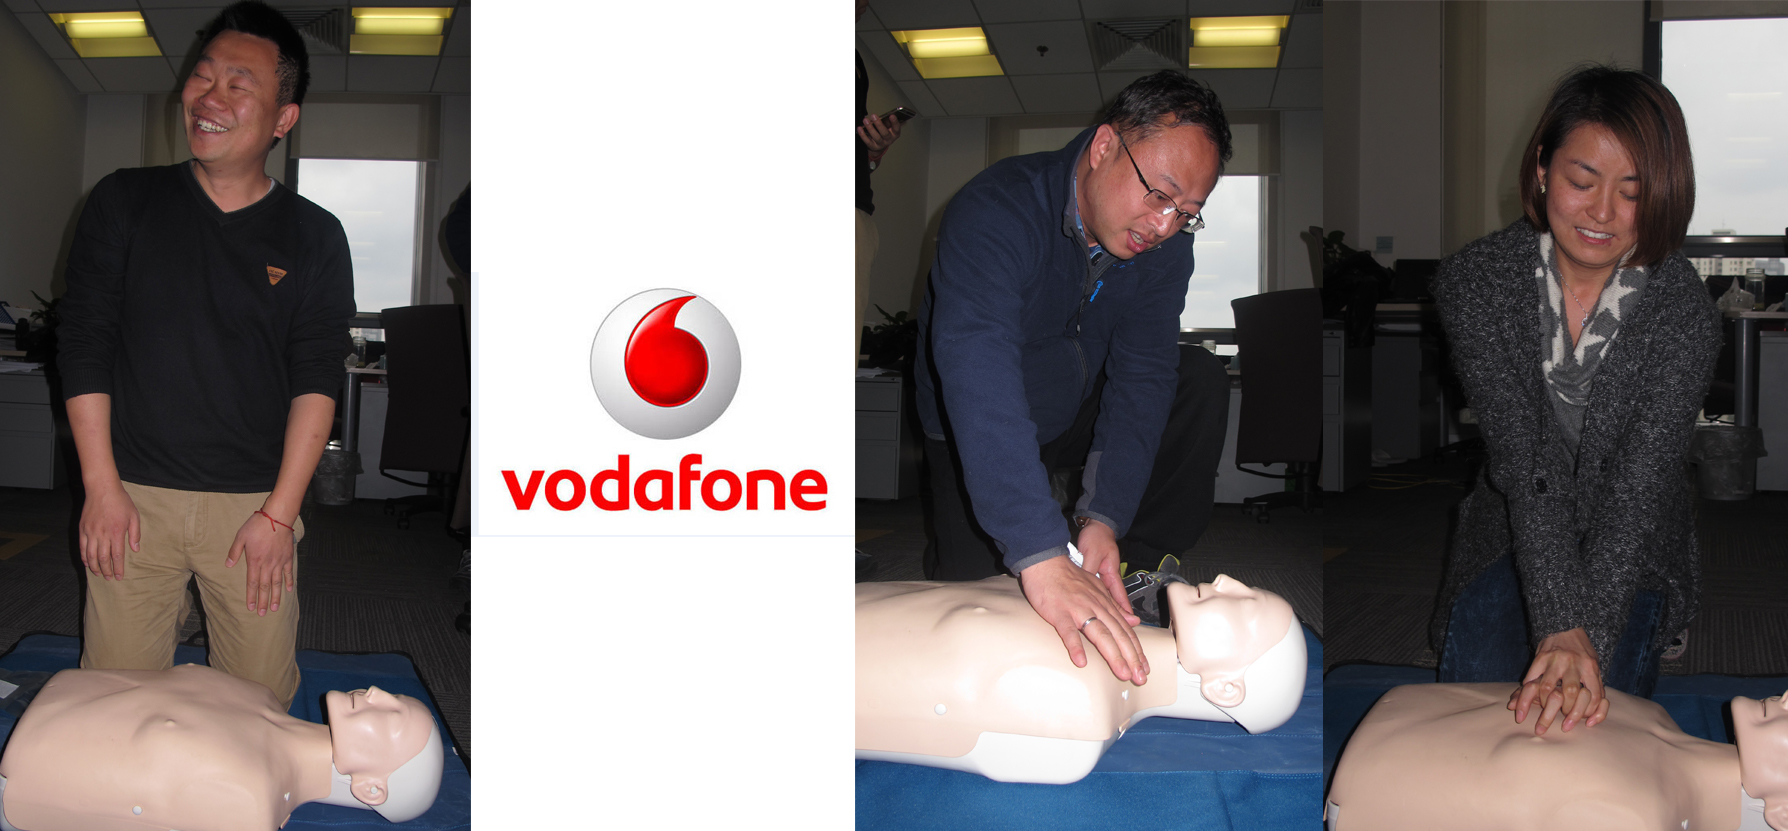 vodafone firstaid training